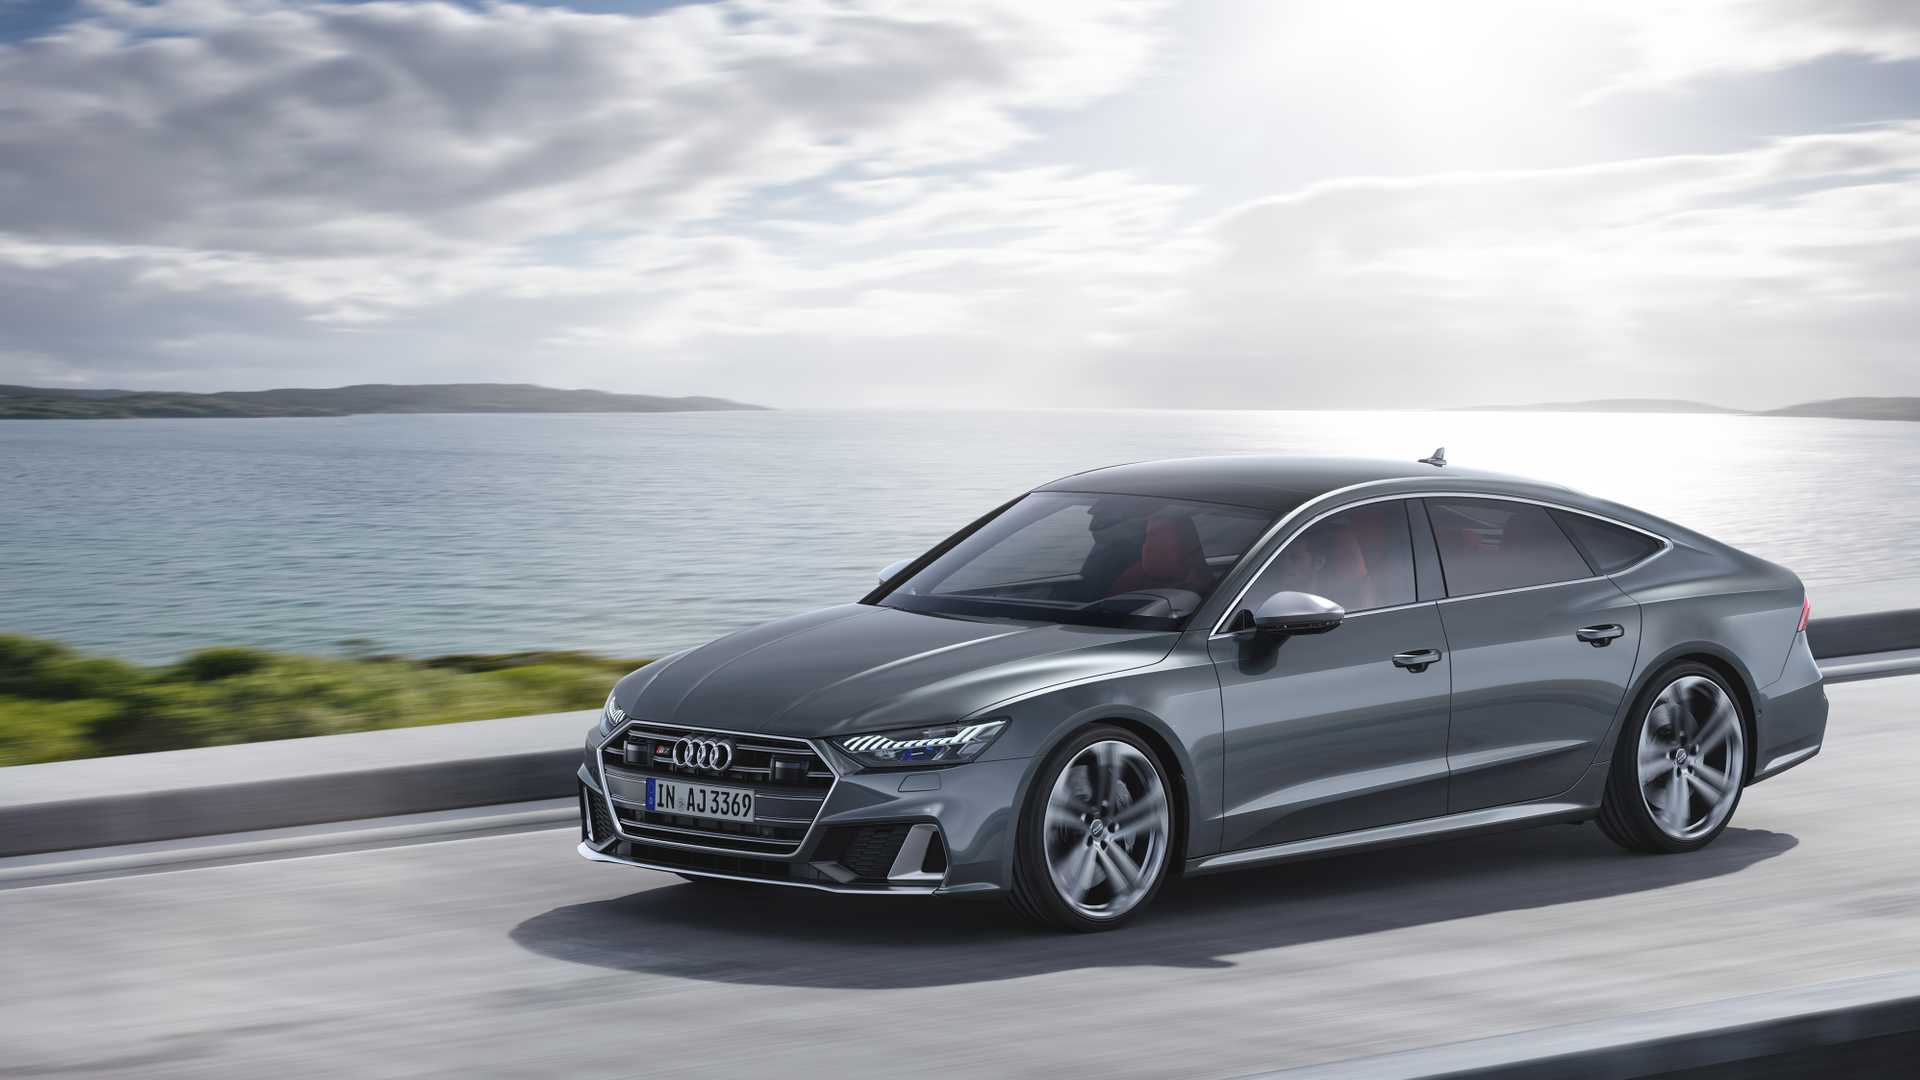 99 All New Audi S7 2020 Performance and New Engine by Audi S7 2020